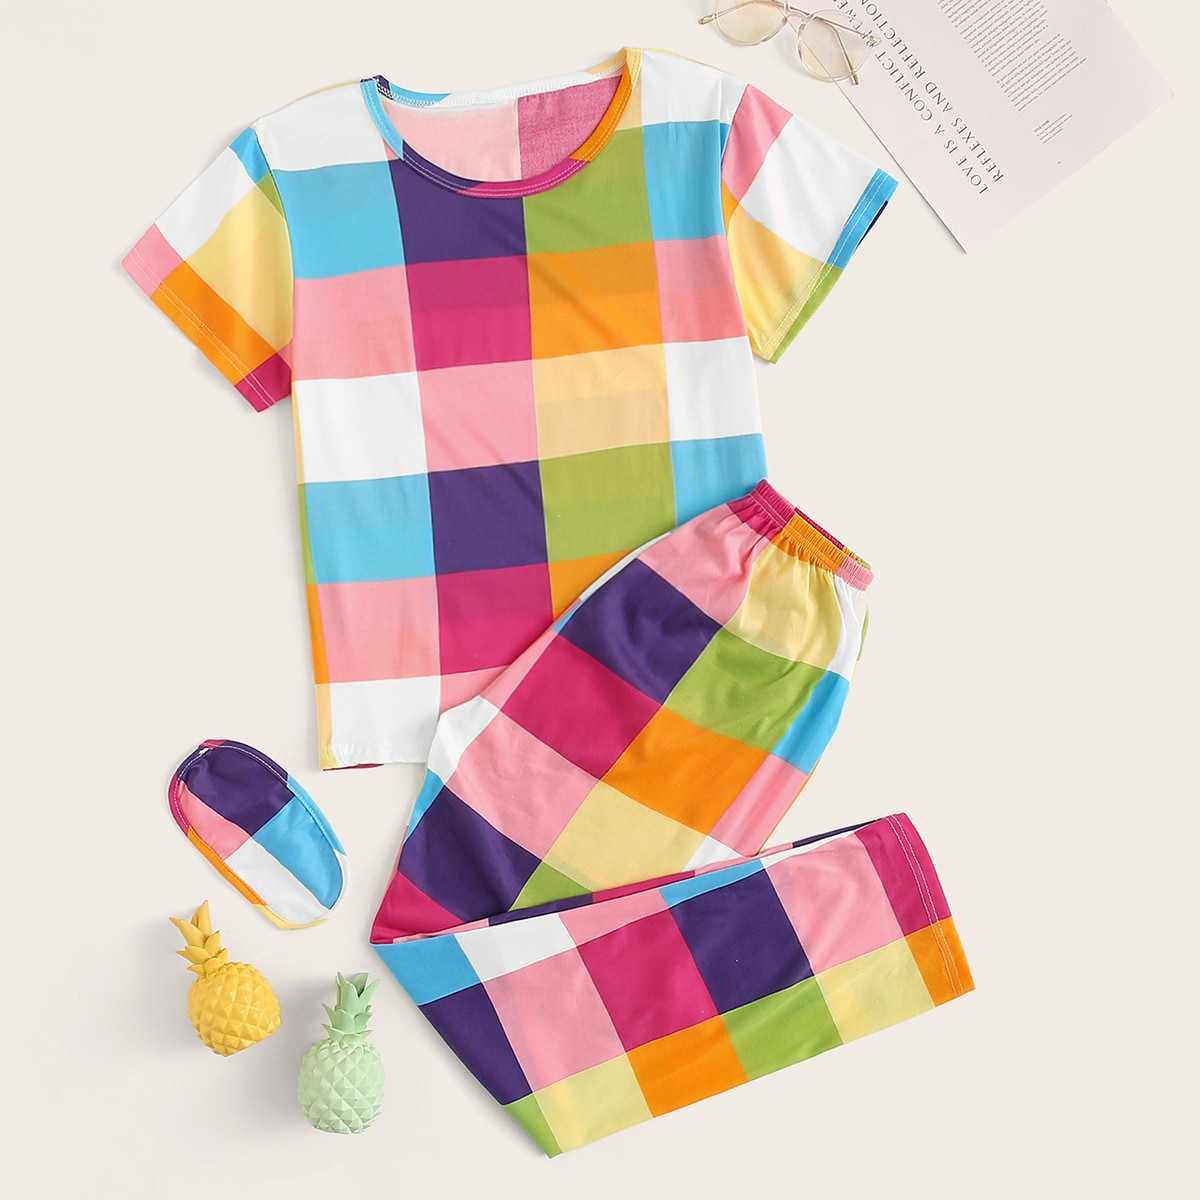 Multicolor Plaid Pajama Set With Eye Mask in Multicolor by ROMWE on GOOFASH